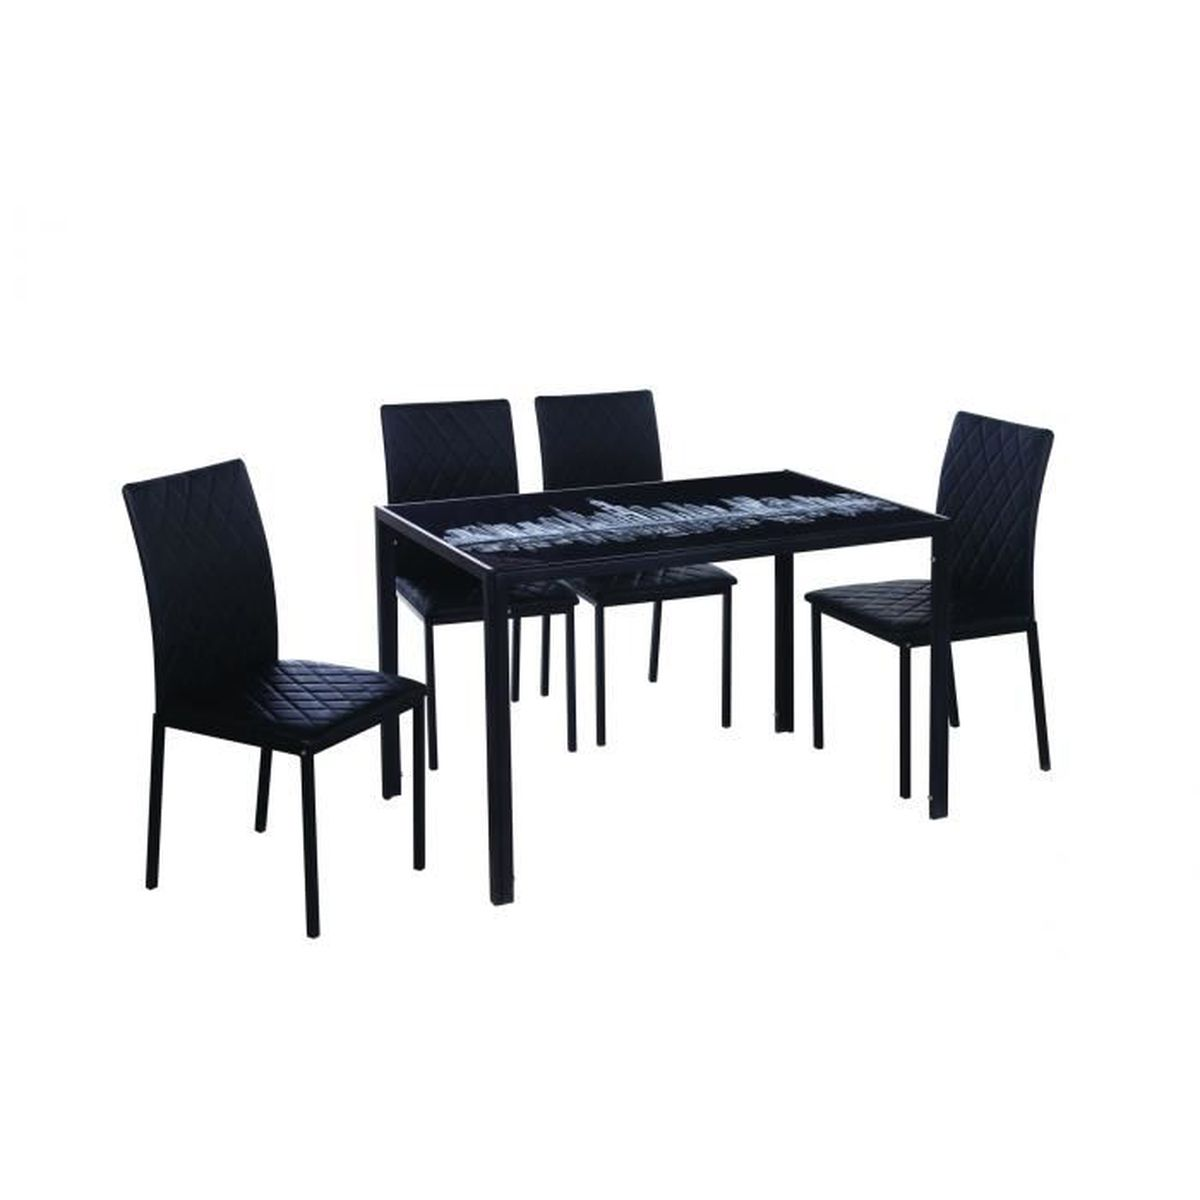 Table manger 4 chaises noir design achat vente for Table a manger noir